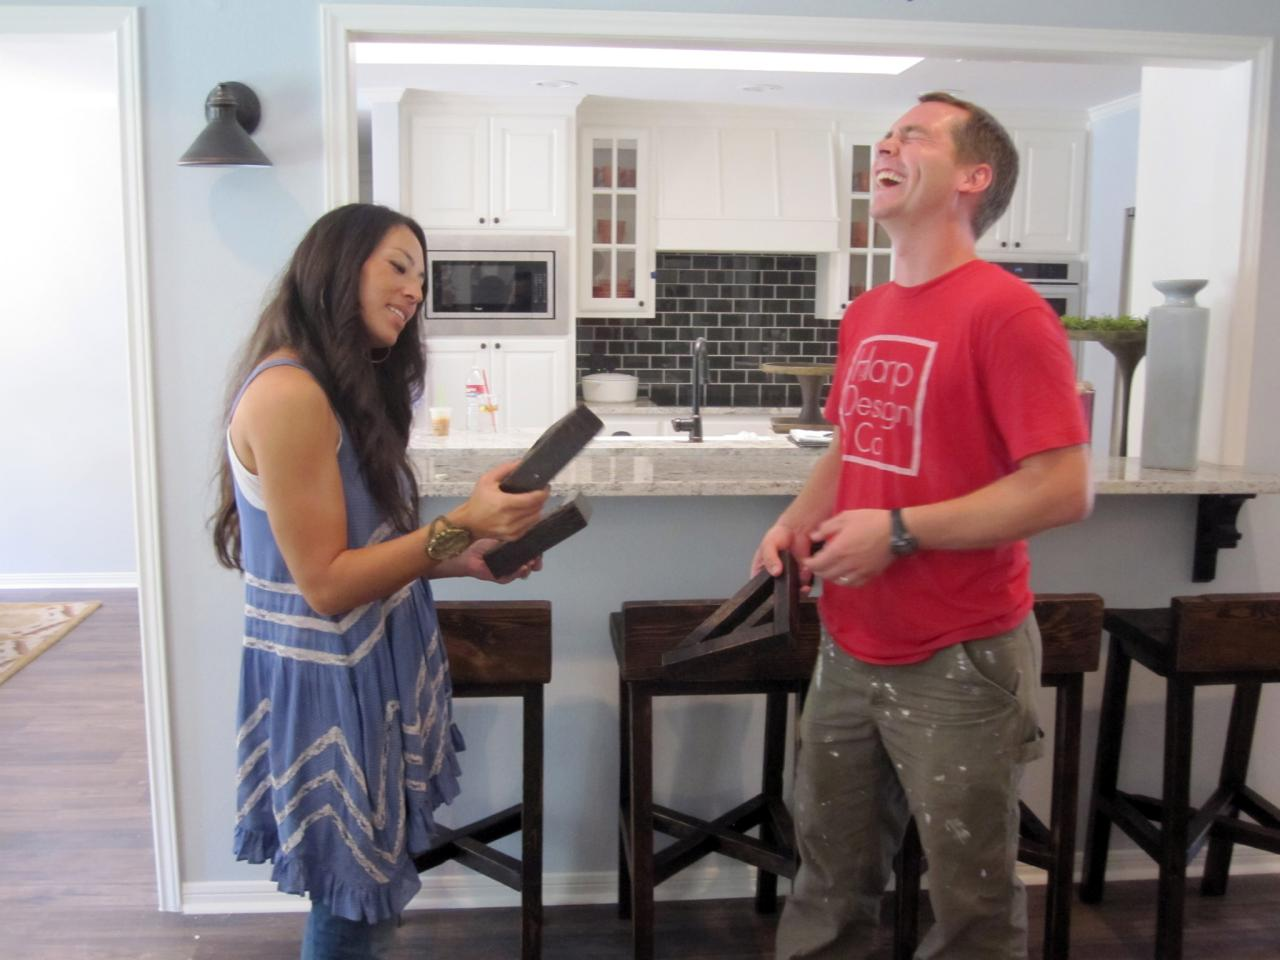 Joanna Gaines enlists Clint Harp's help on HGTV's 'Fixer Upper'